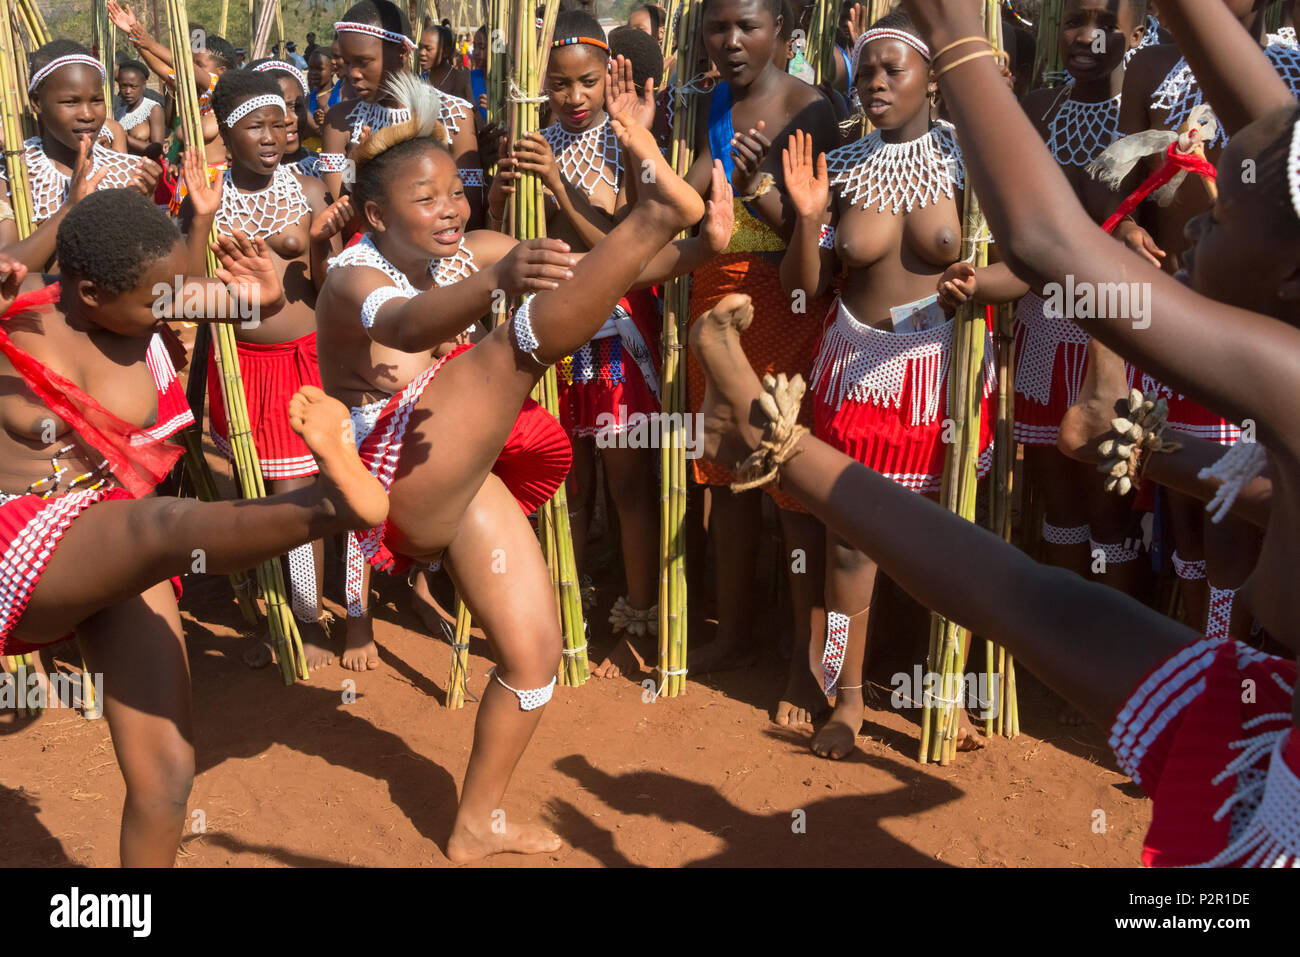 naked women reed dance bathing